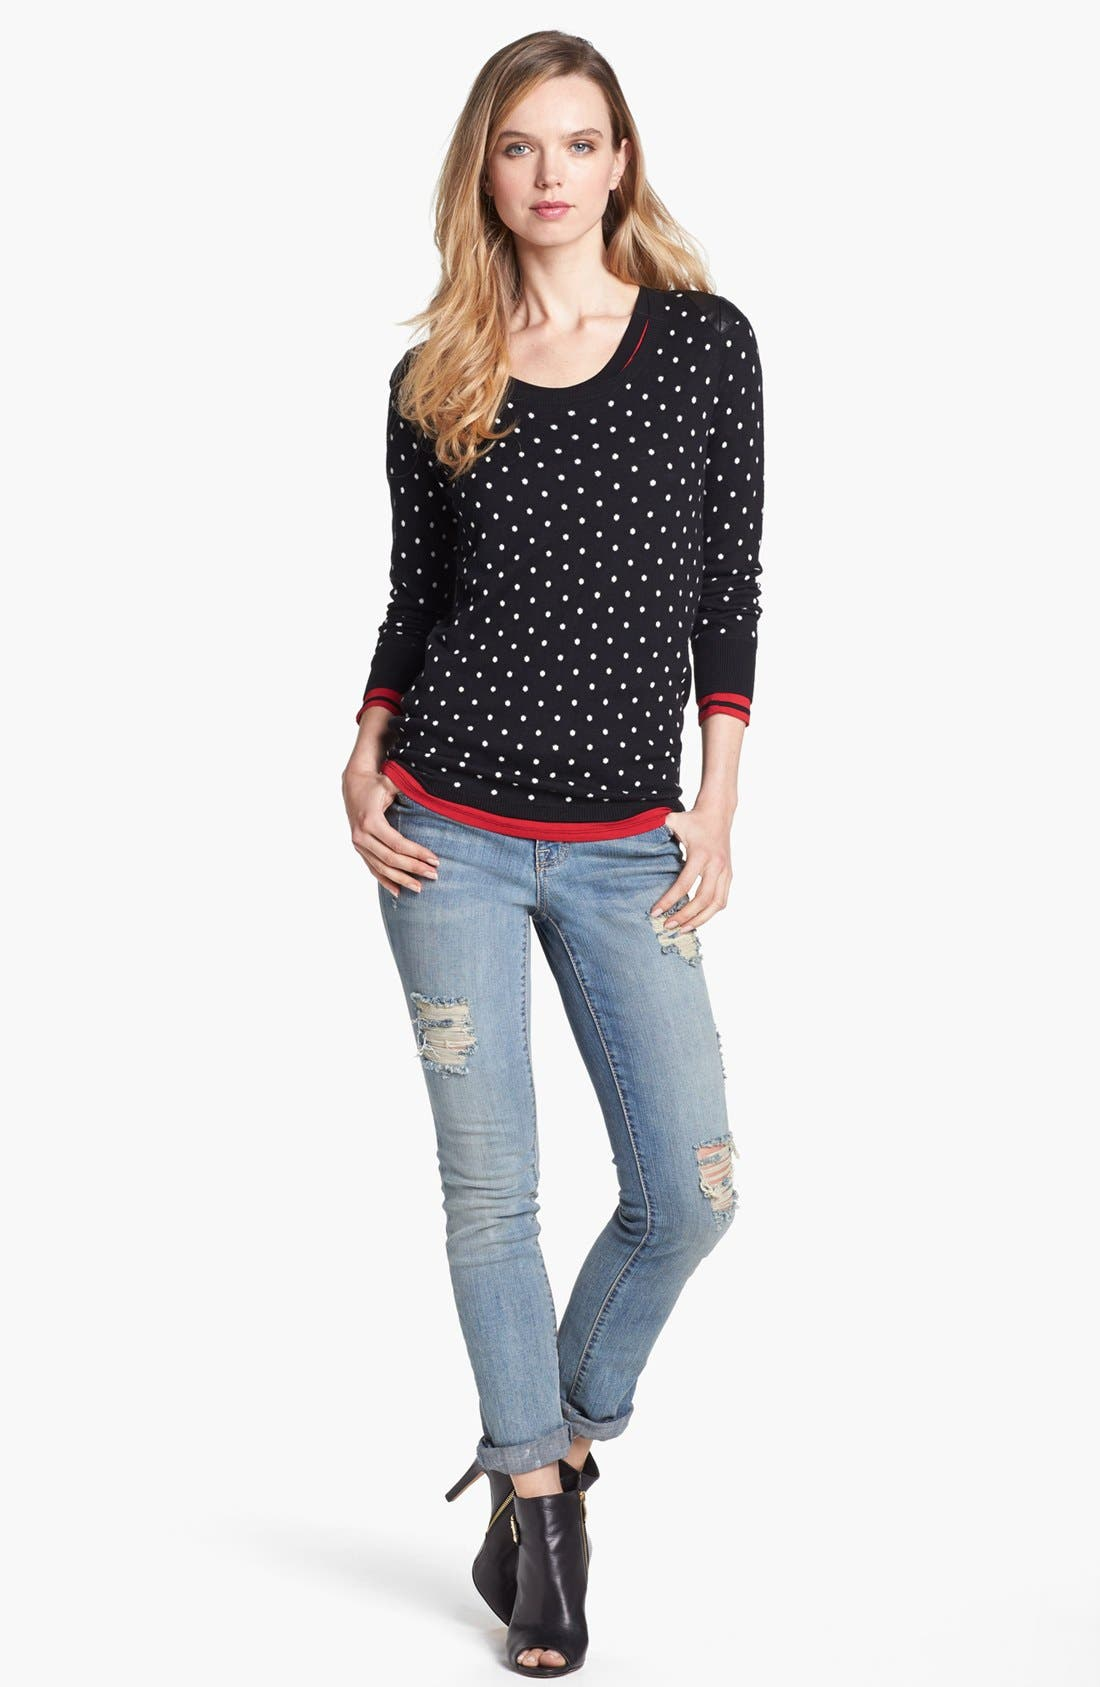 Main Image - Two by Vince Camuto Faux Leather Shoulder Dot Sweater